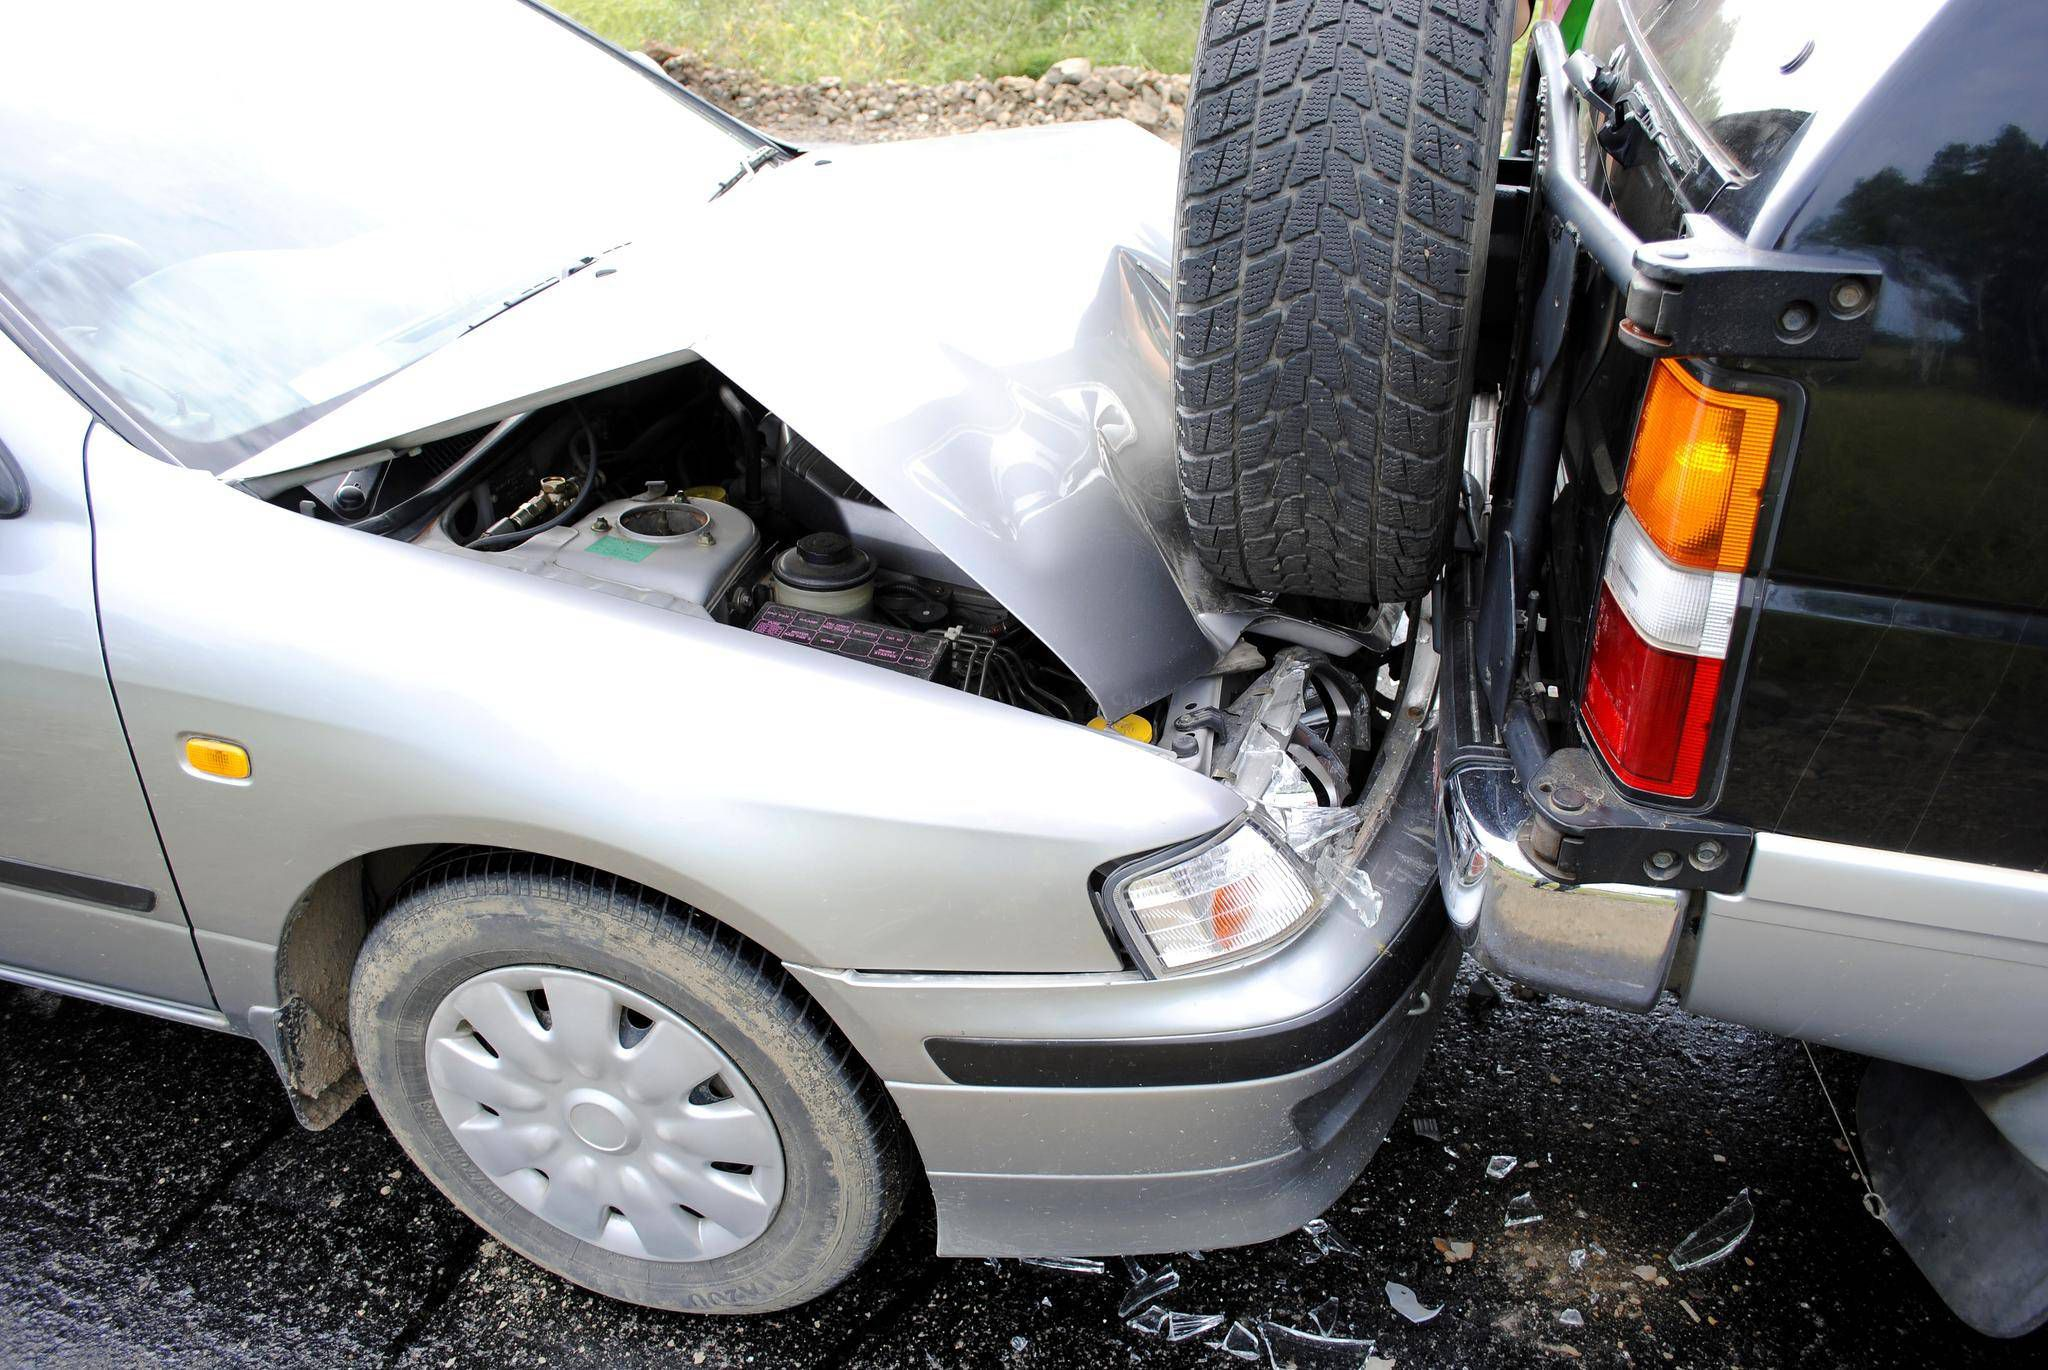 My leased vehicle was in an accident – what are my options